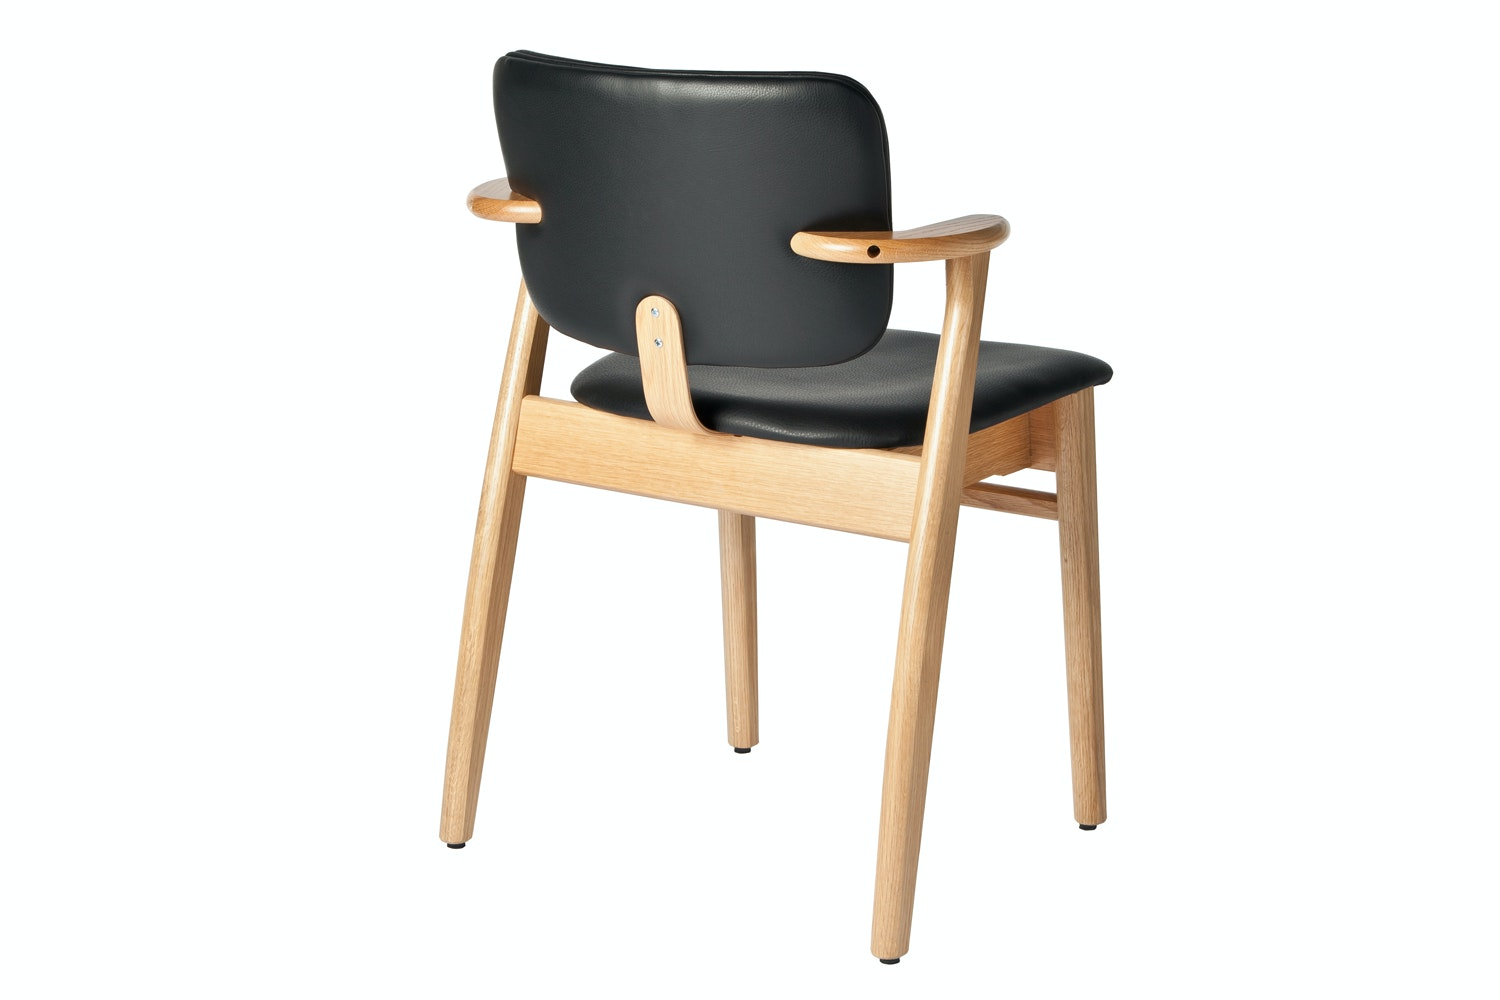 Domus Chair by Ilmari Tapiovaara for Artek